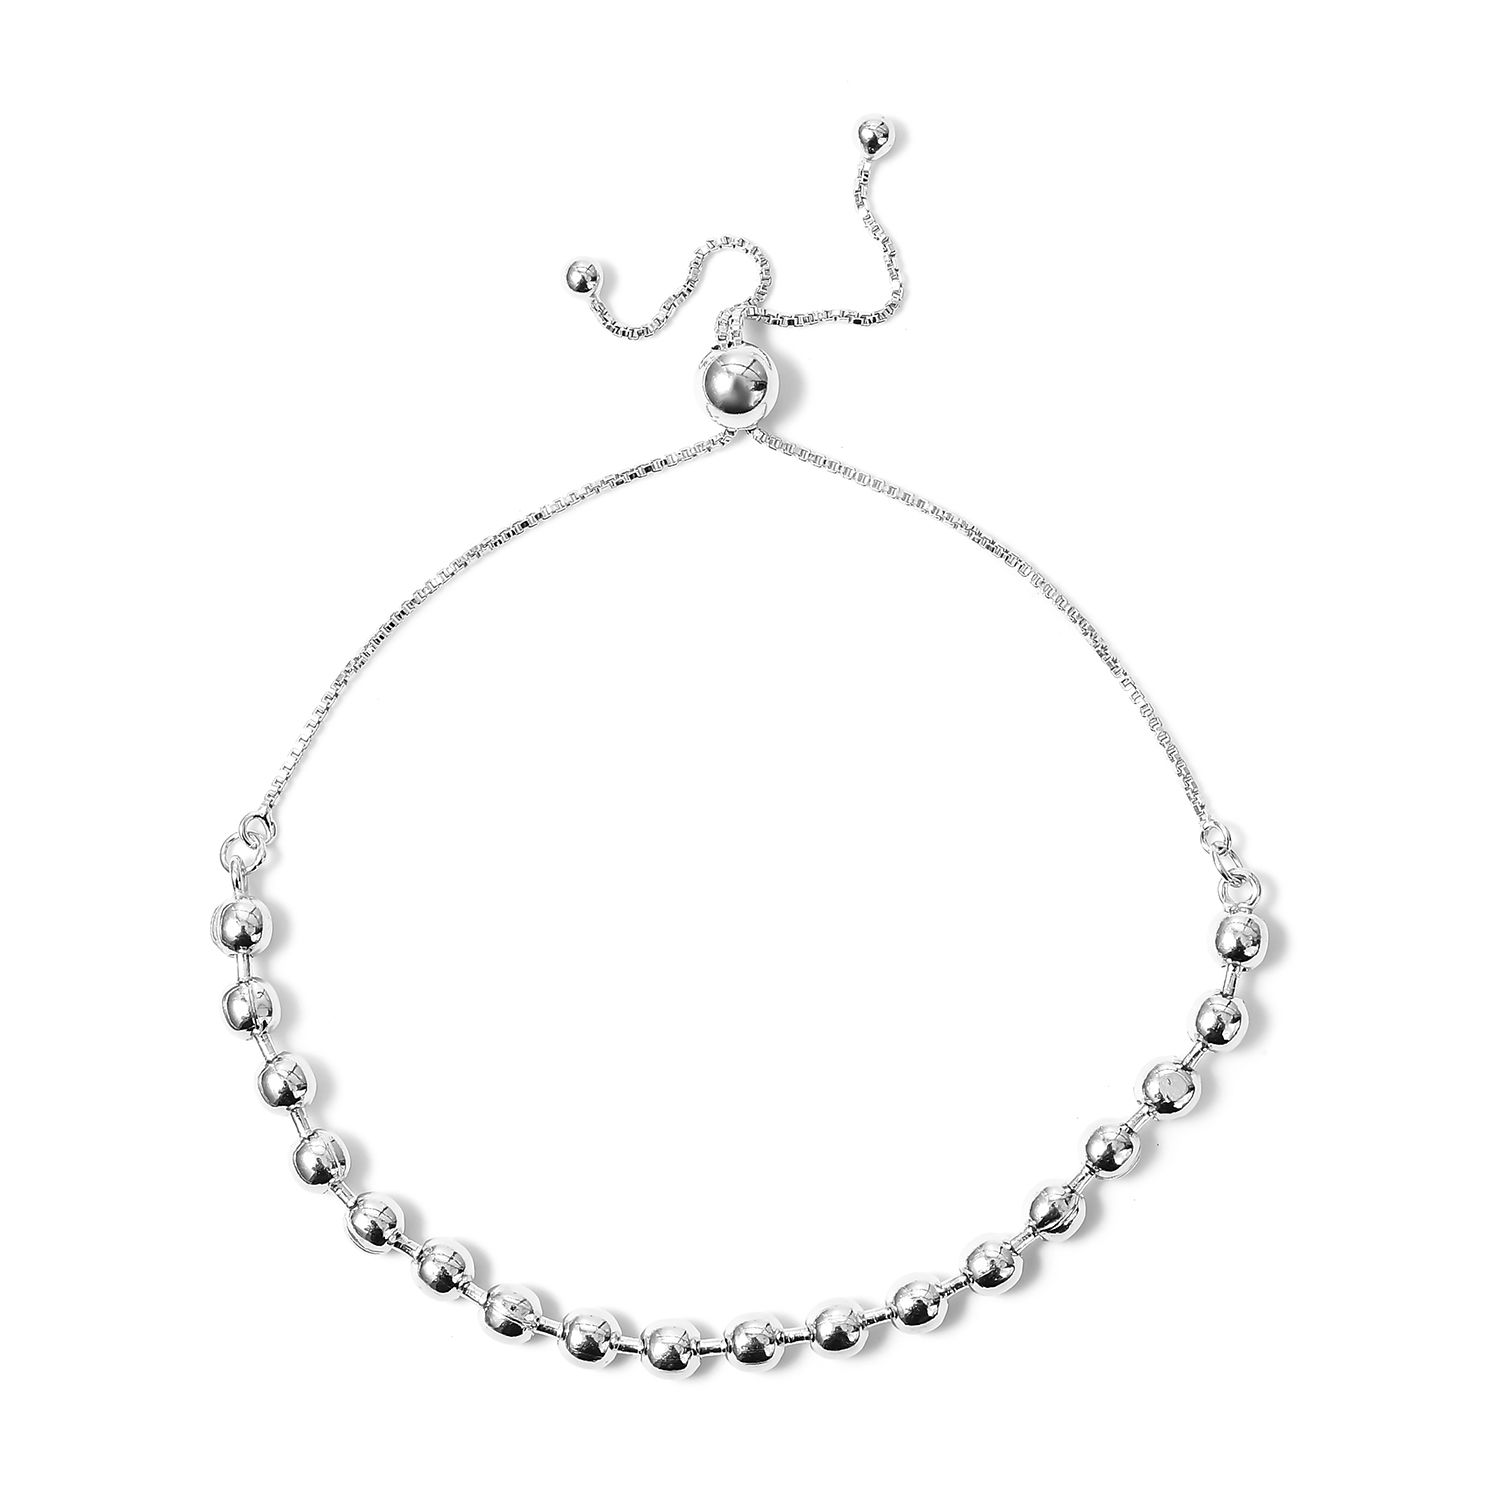 Silver Choker Necklace Perfect for Pendant 925 Sterling Silver Teen Girl Womens Gift Birthday Anniversary Chain Charm Slide Bride Wedding